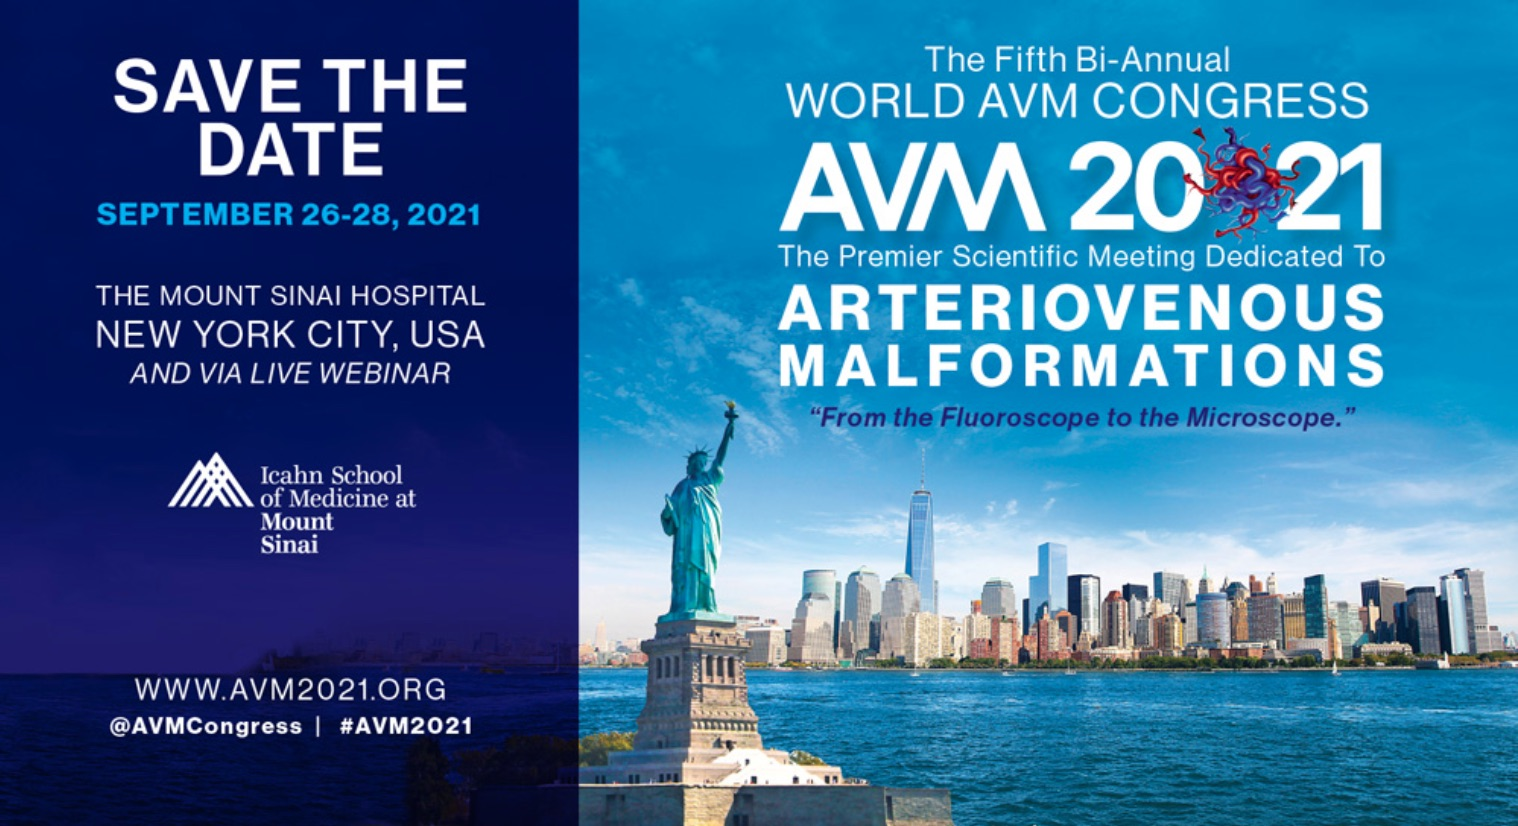 AVM Congress 2021